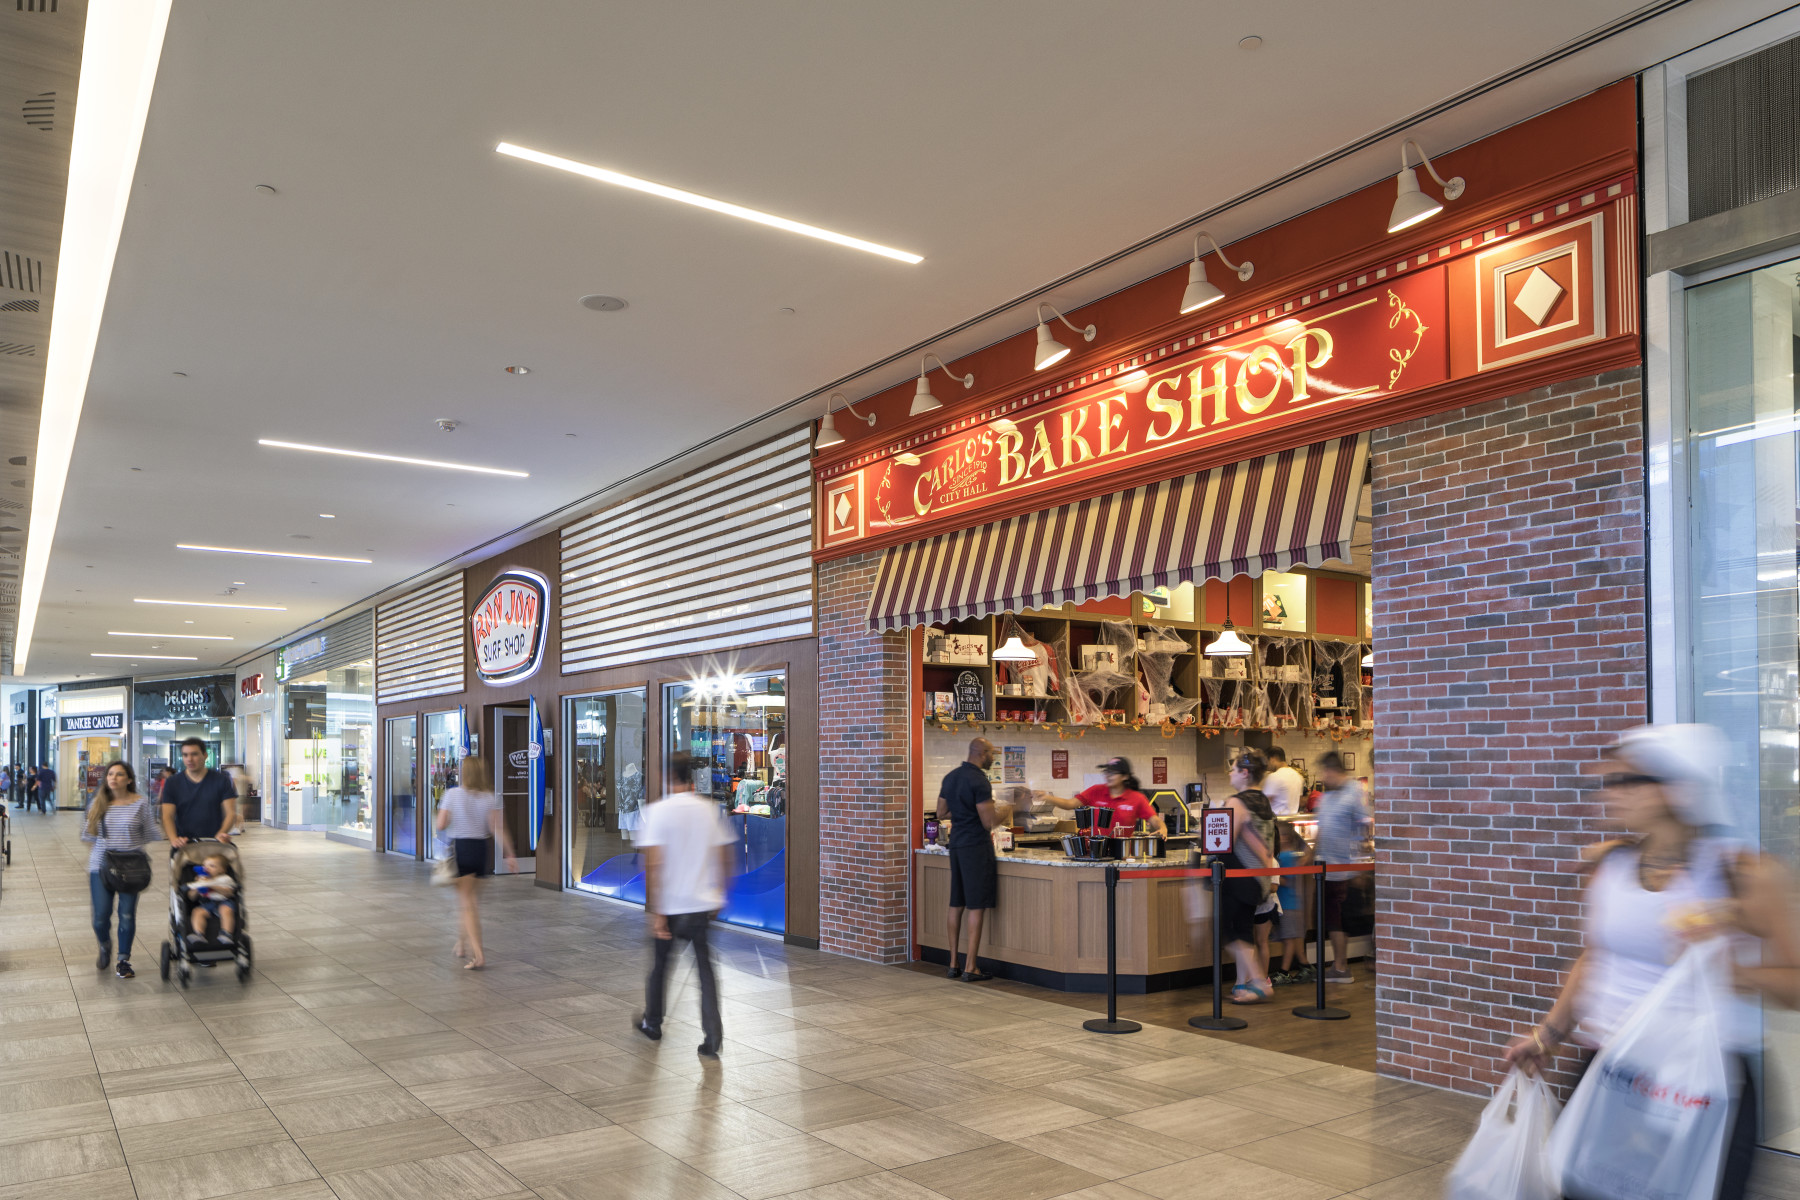 Best Kissimmee Shopping: See reviews and photos of shops, malls & outlets in Kissimmee, Florida on TripAdvisor.